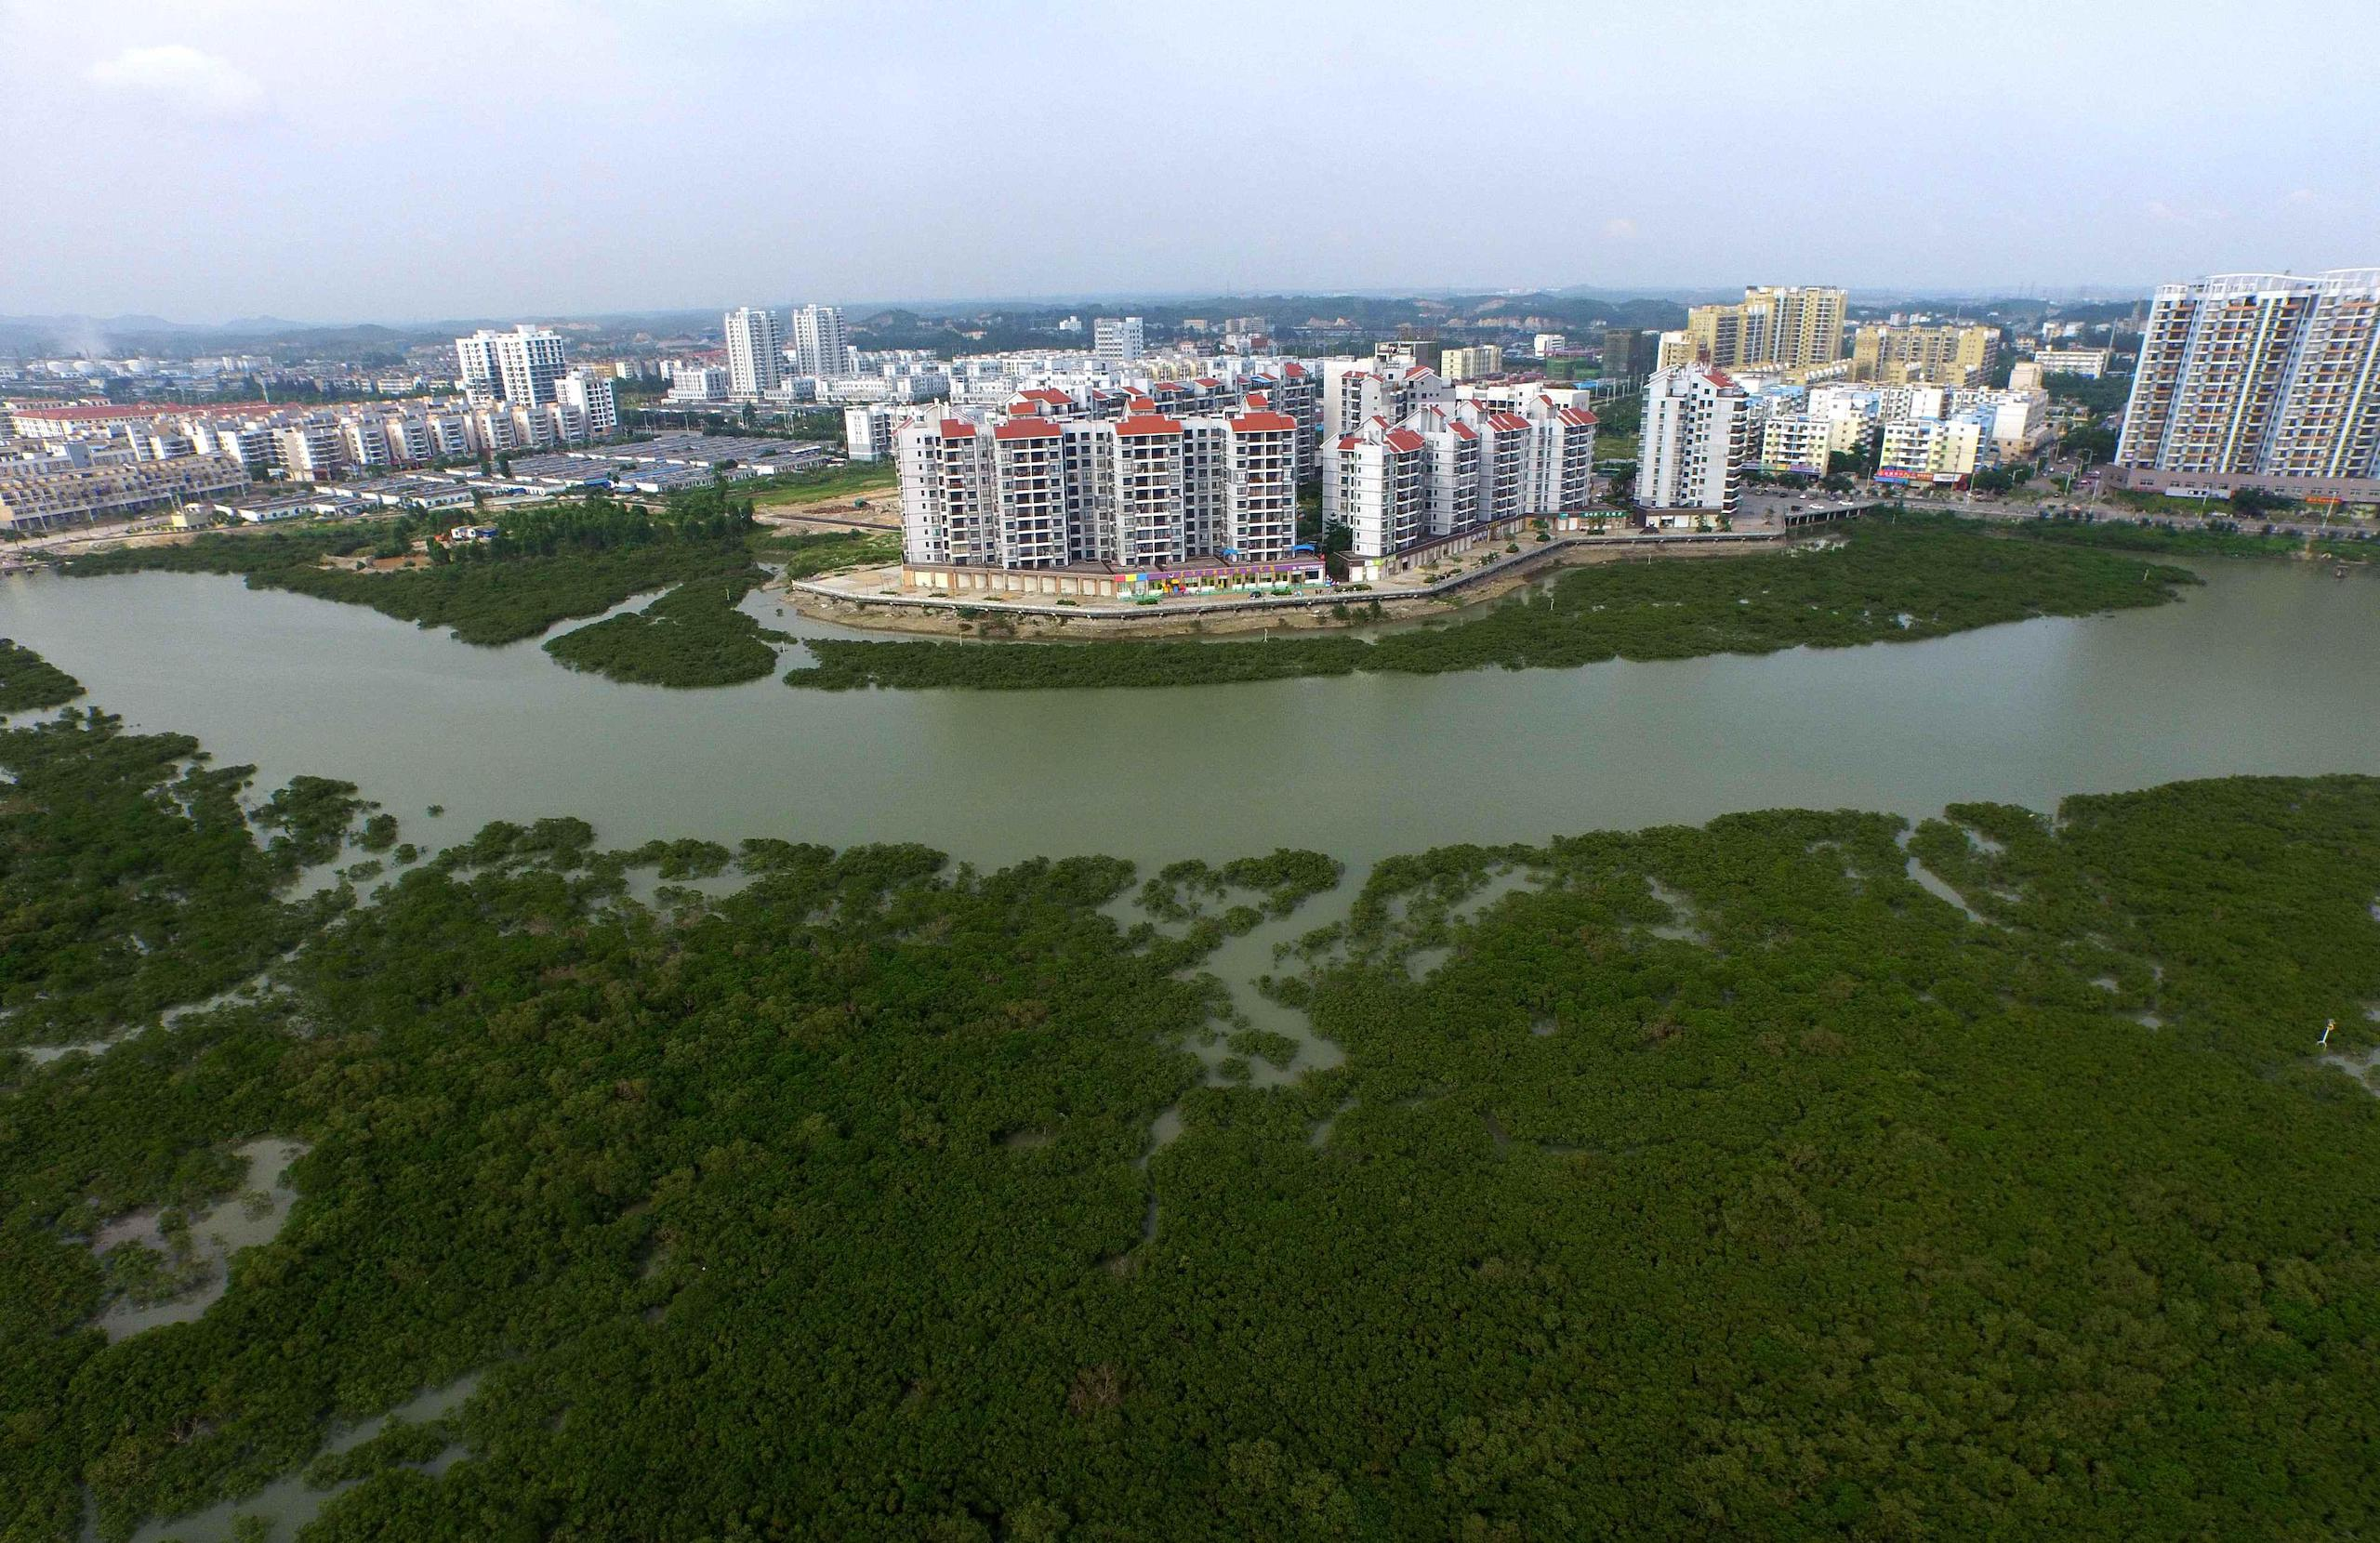 Mangrove forest in front of Qinzhou city, Guangxi (Image: Huang Xiaobang / Alamy)